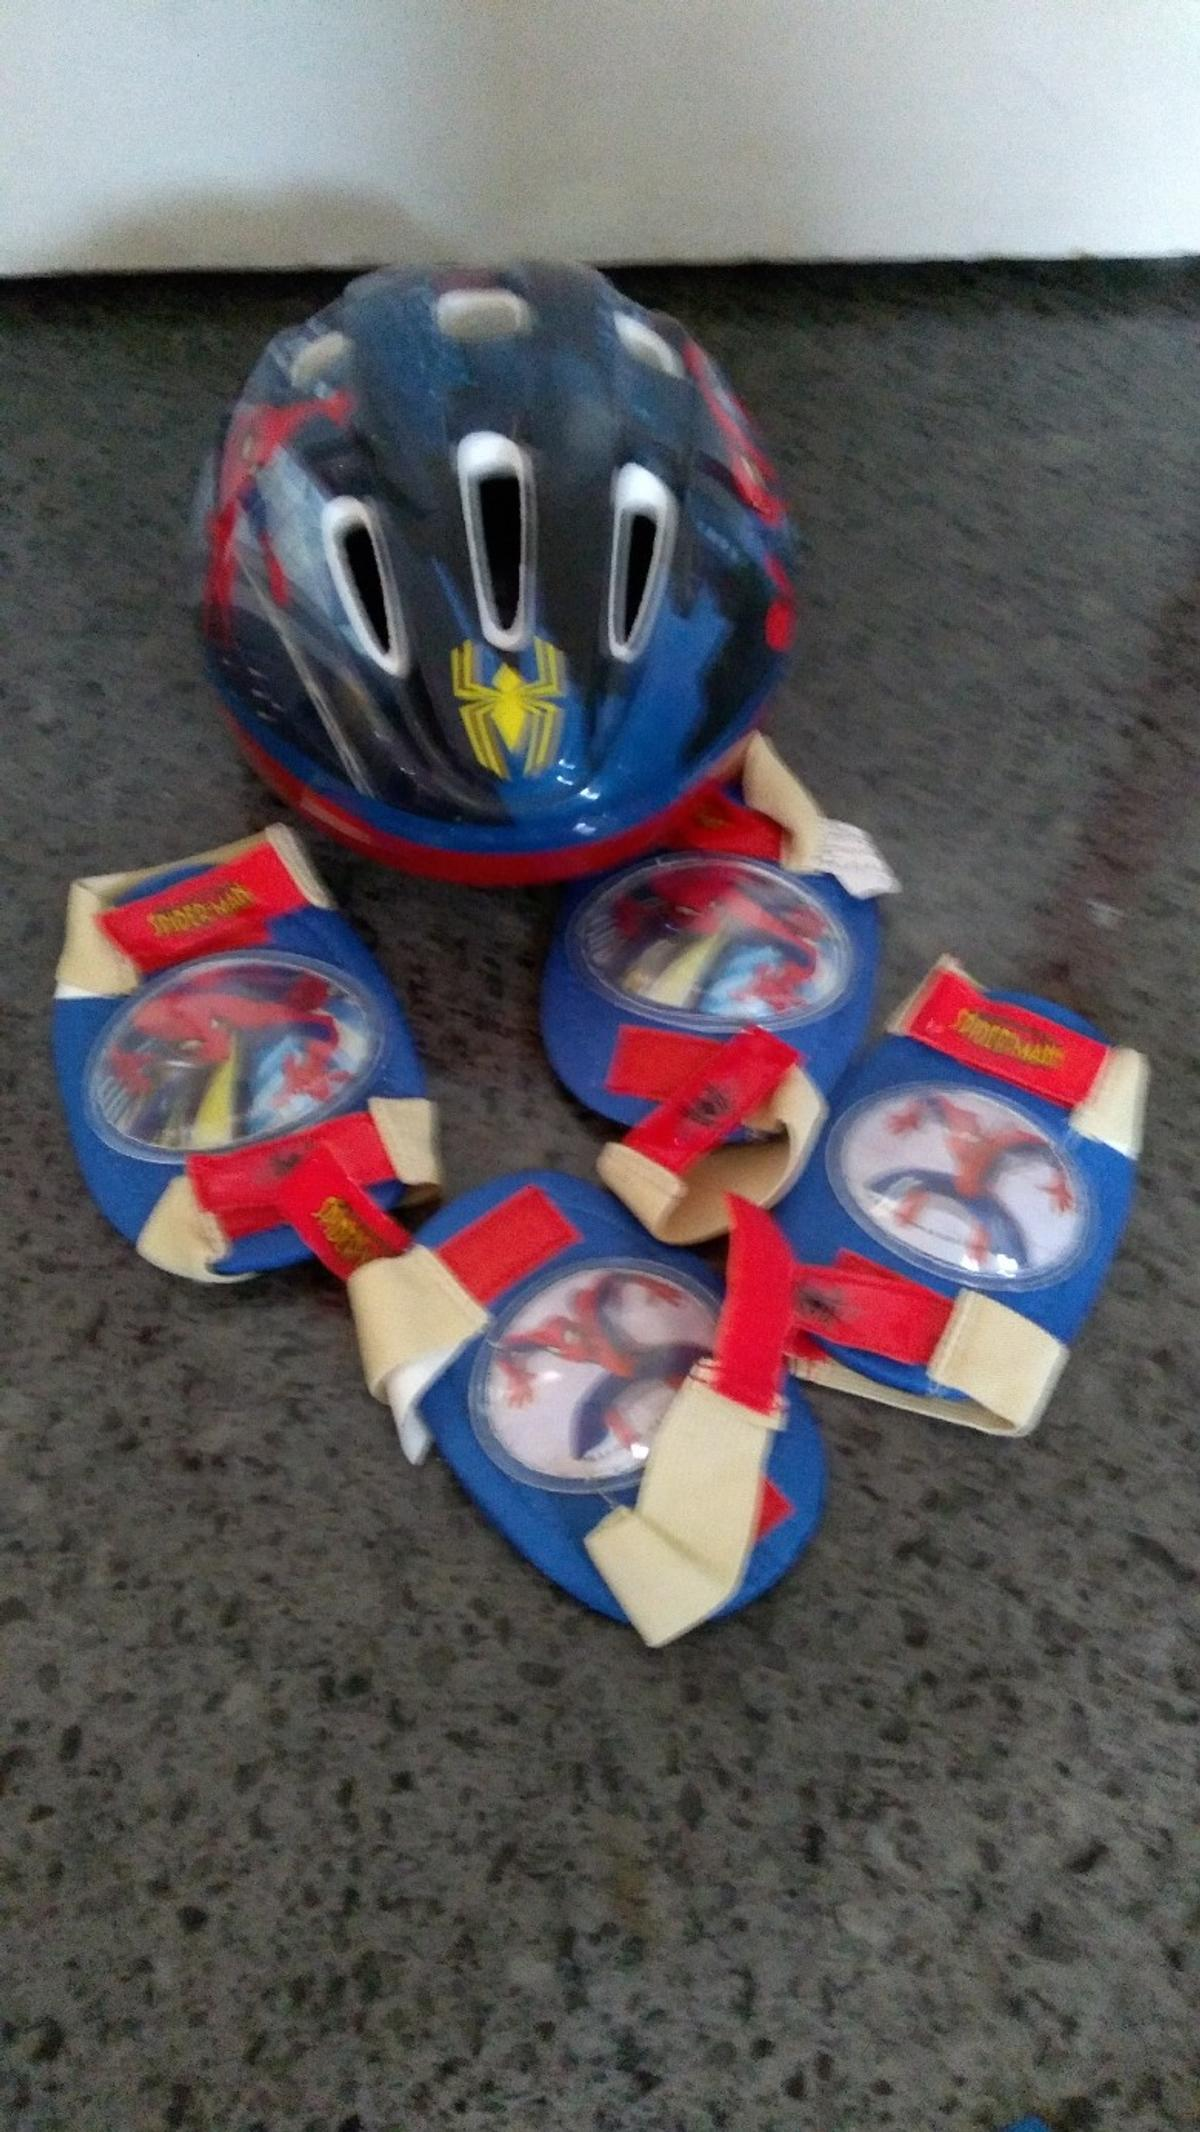 In very good condition Spiderman elbow and knee pads for scooter or bike. No offers,no time wasters, honest people only please.